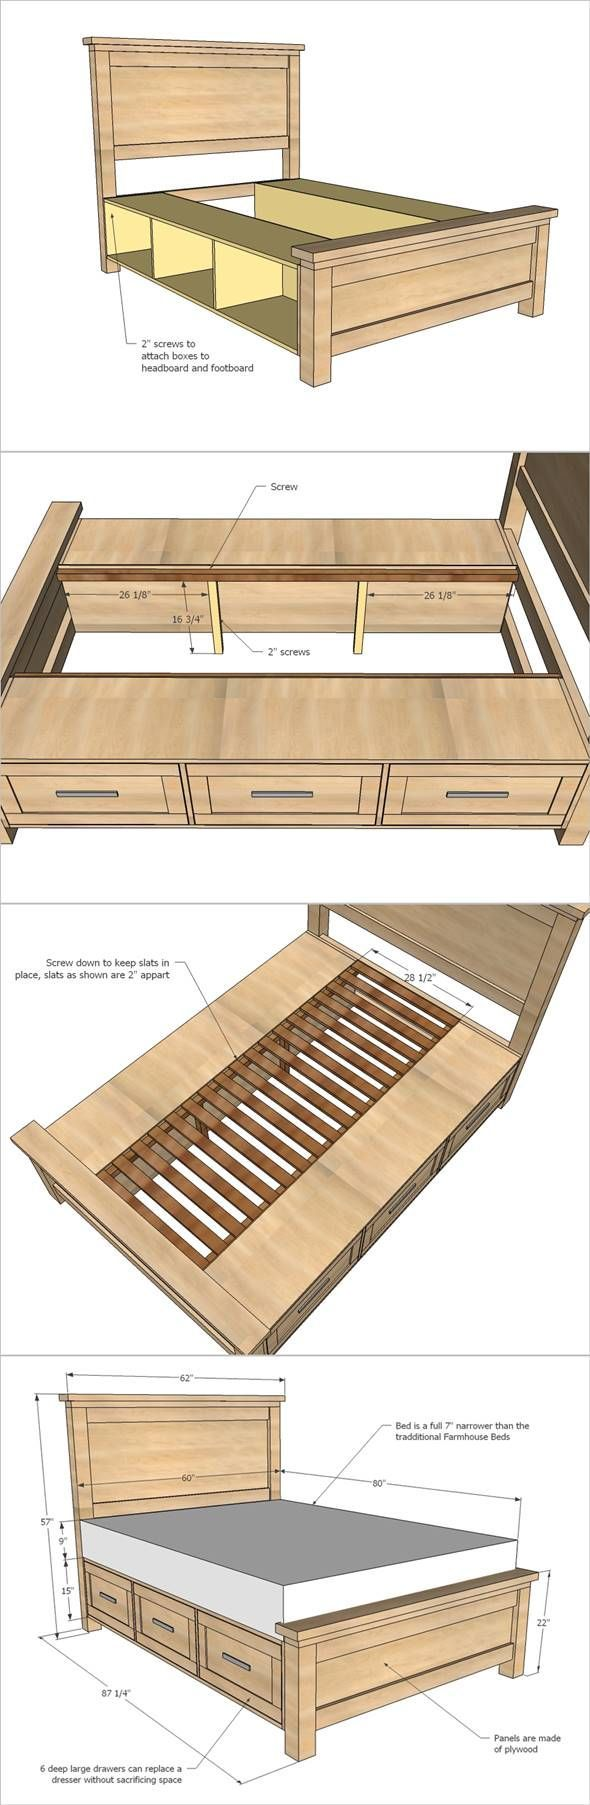 best diy ideas u tips images on pinterest great ideas